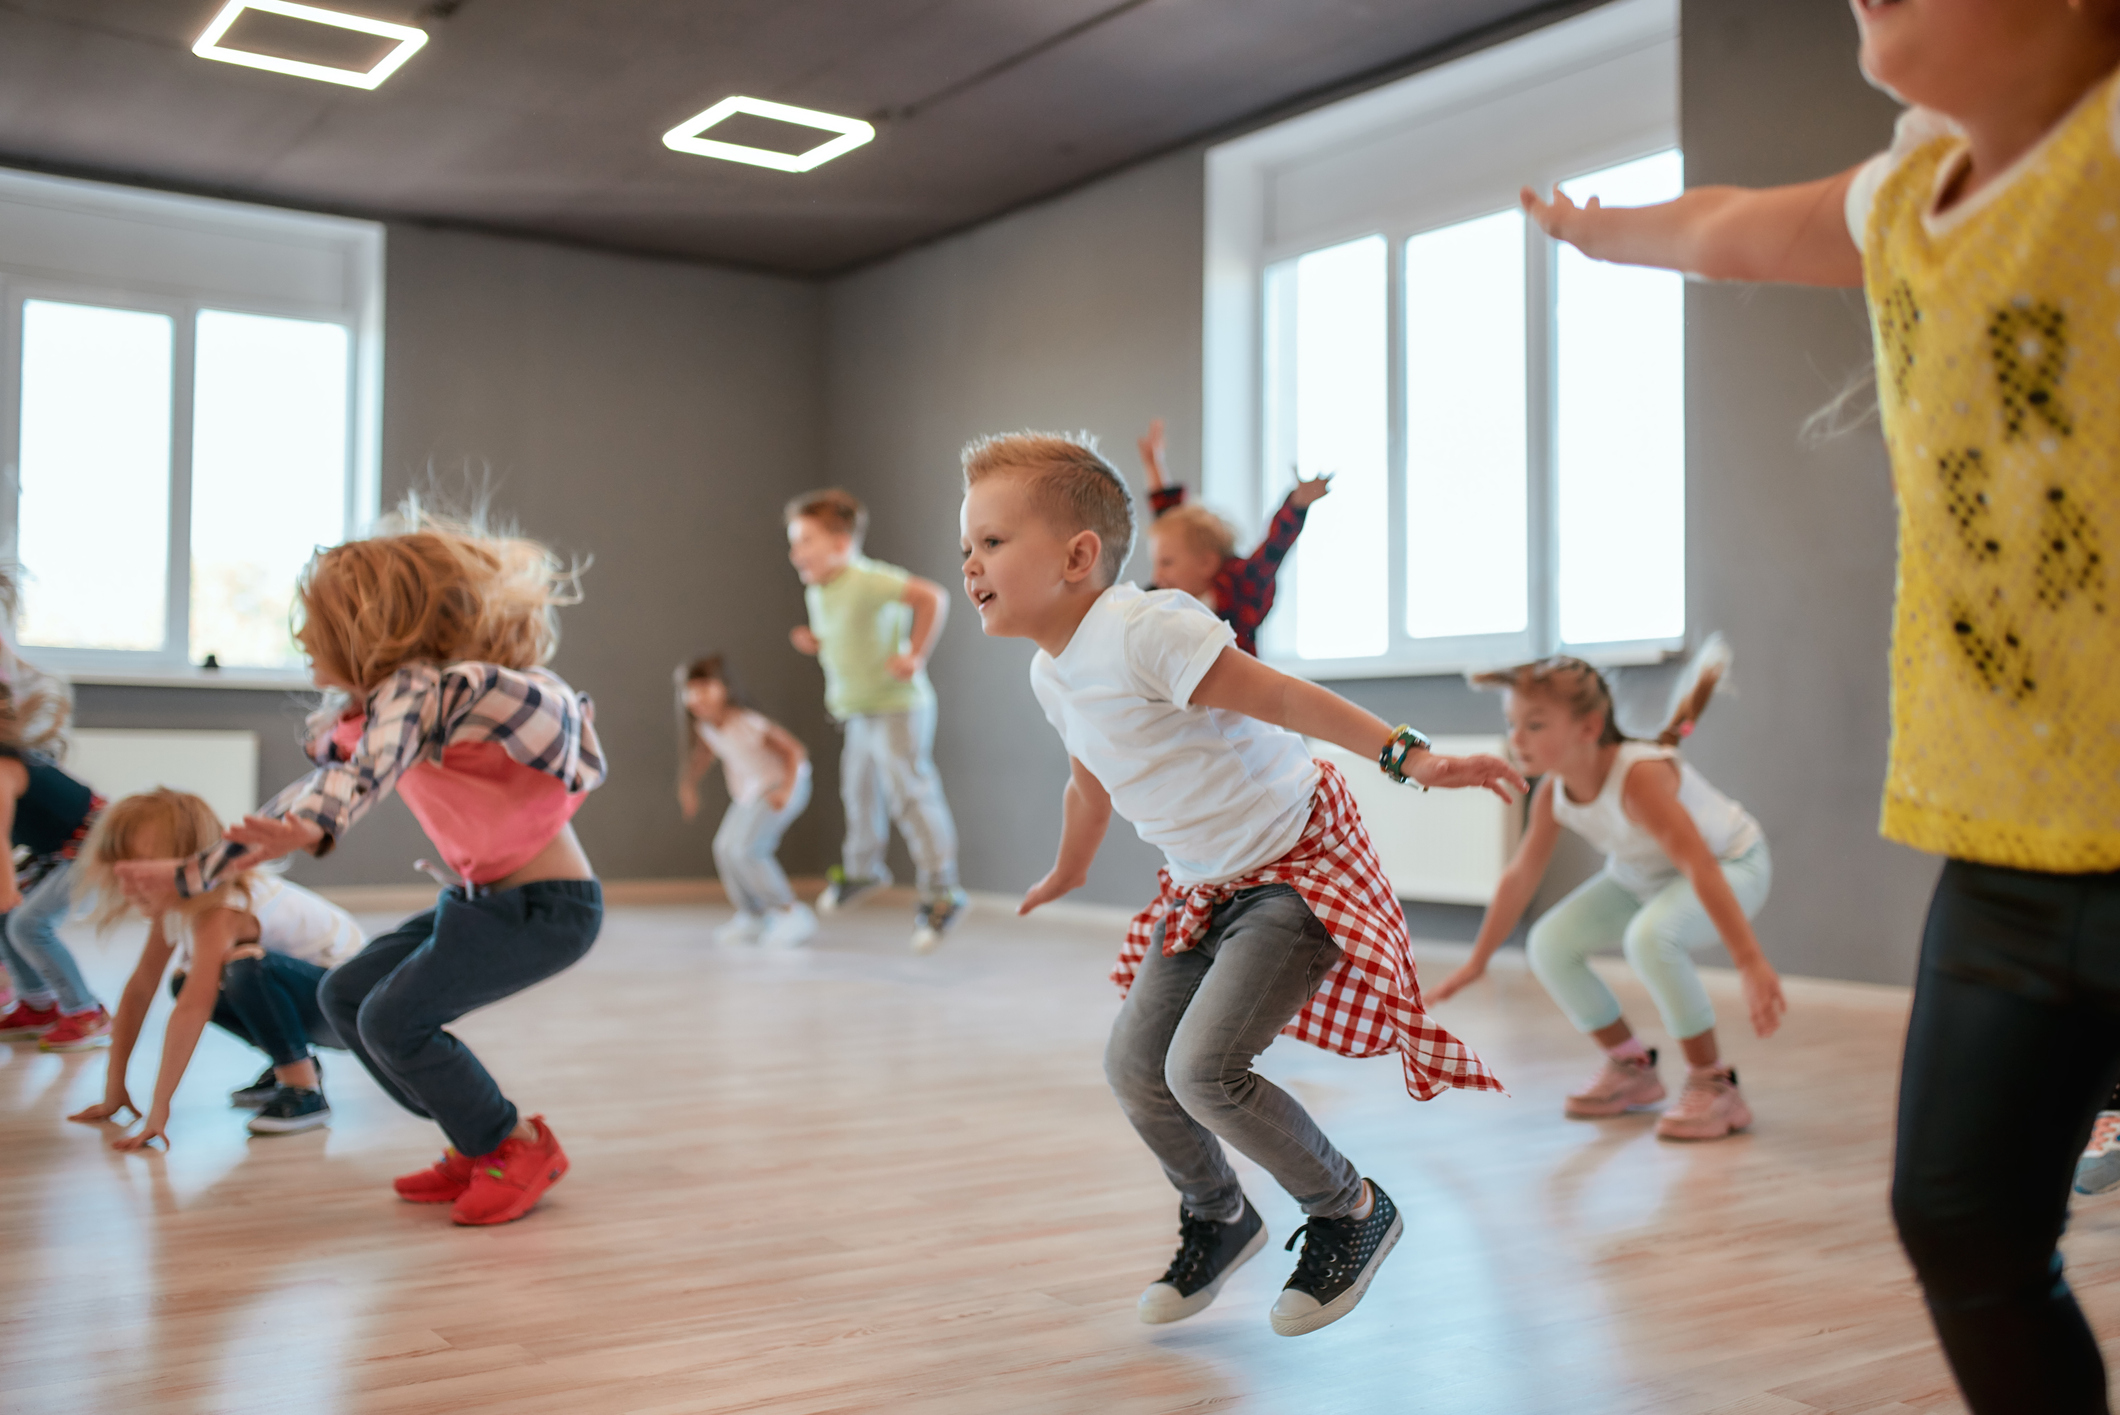 Group of cute little boys and girls studying modern dance in studio. Children jumping while having a choreography class. Sport. Active lifestyle